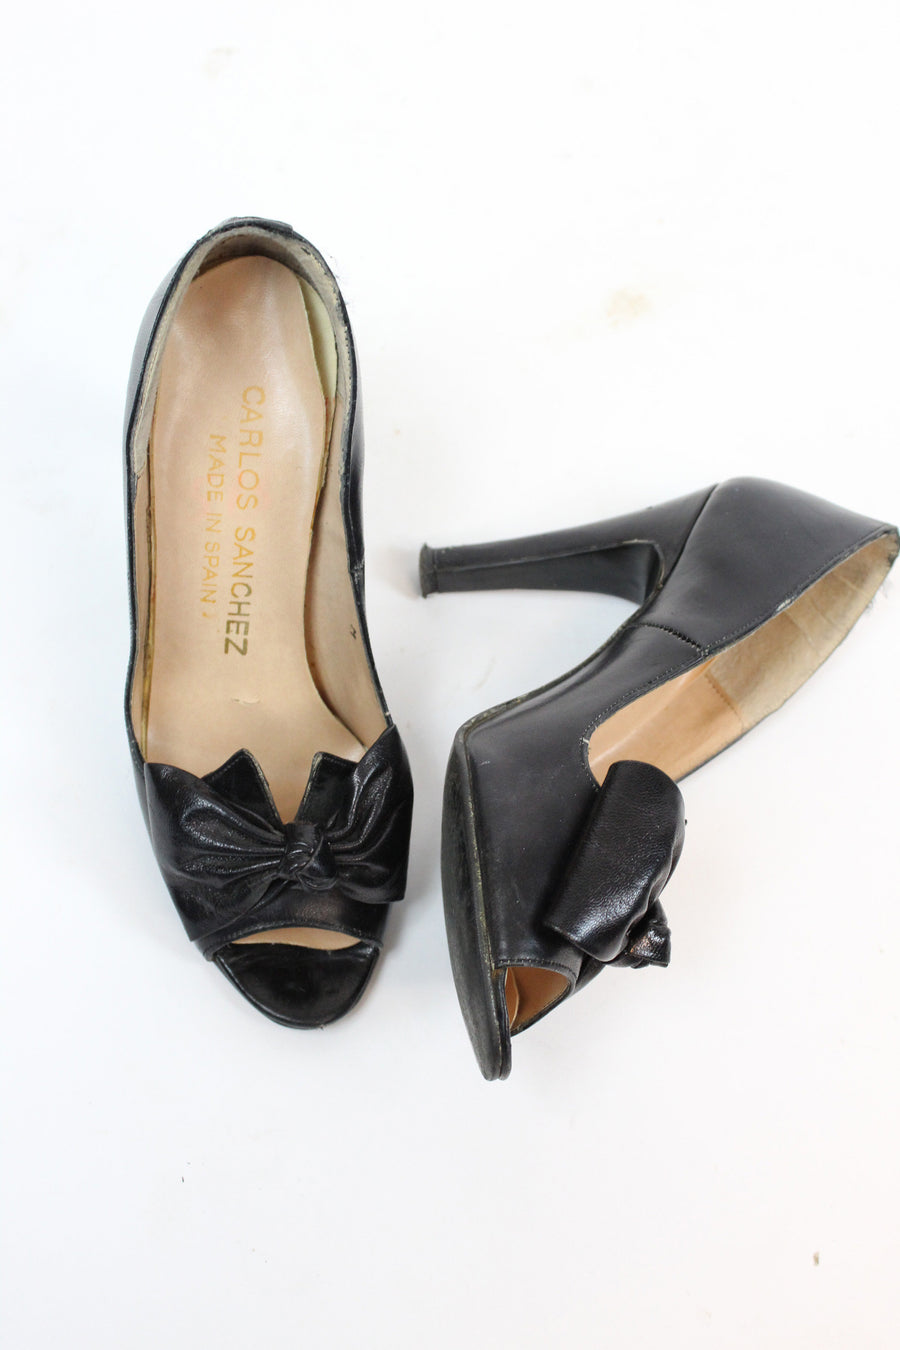 1970s vintage bow peep toes size 5 us | vintage leather pumps